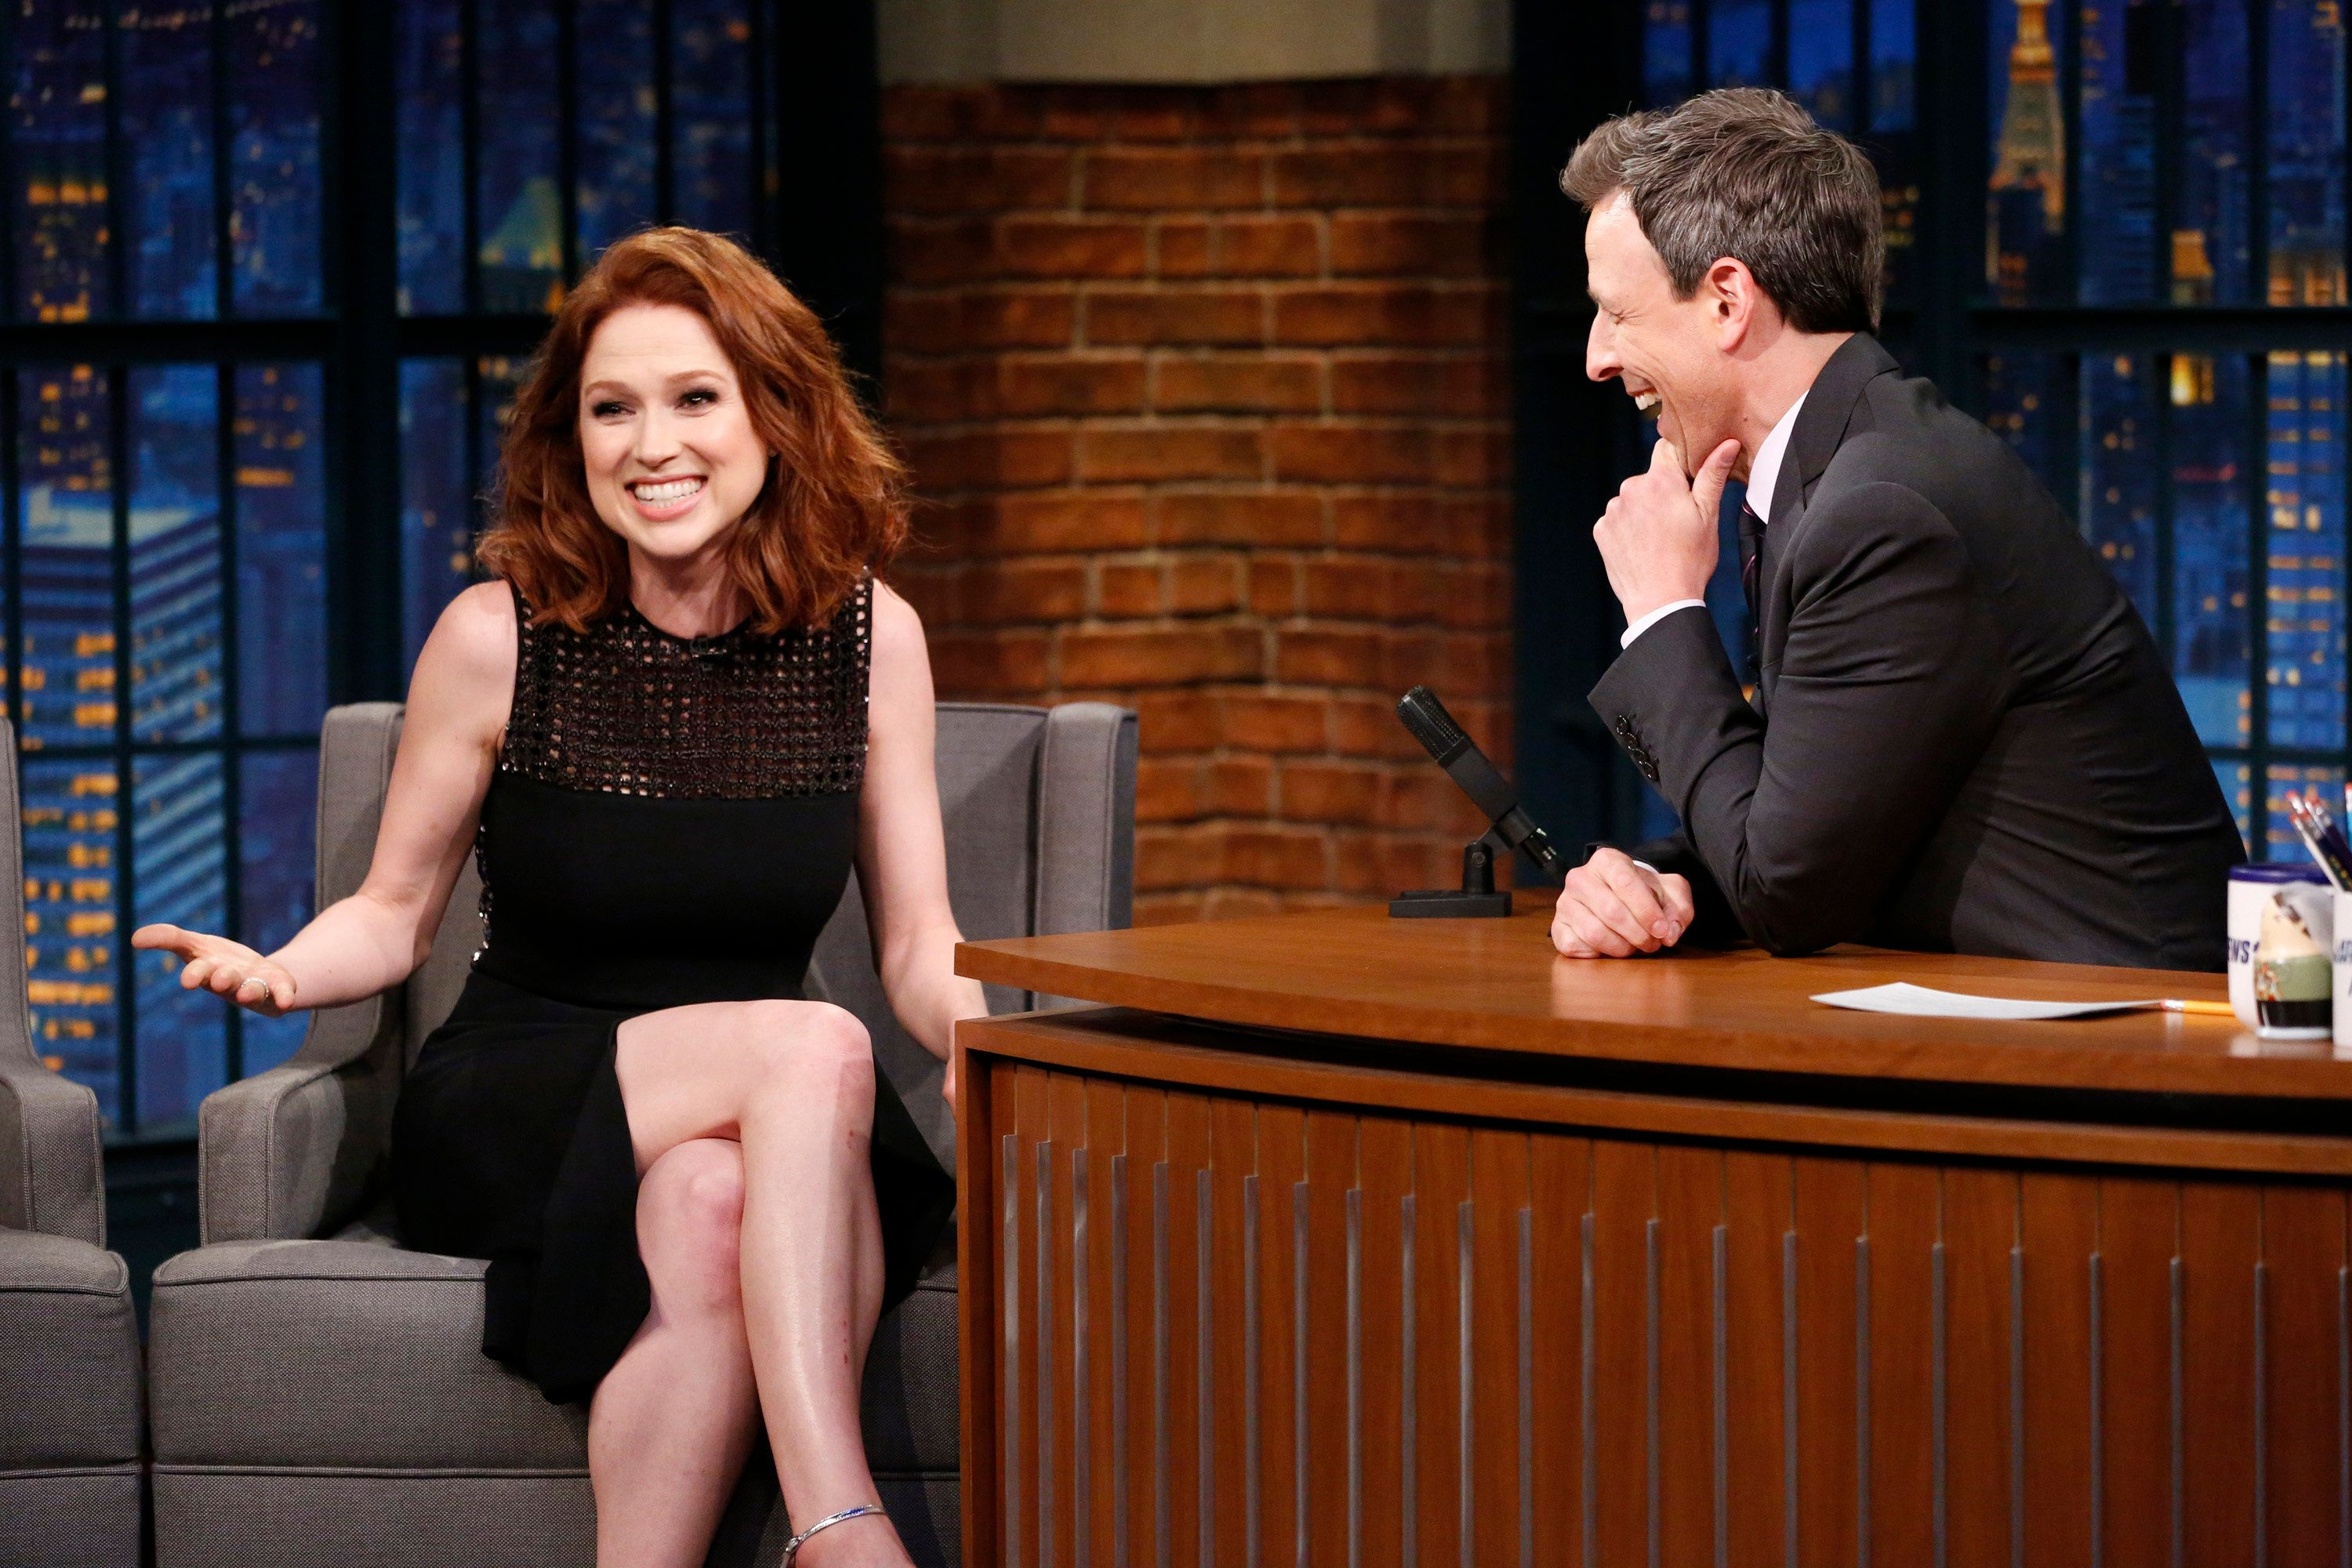 LATE NIGHT WITH SETH MEYERS -- Episode 534 -- Pictured: (l-r) Actress Ellie Kemper talks with host Seth Meyers during an interview on May 24, 2017 -- (Photo by: Lloyd Bishop/NBC/NBCU Photo Bank via Getty Images)